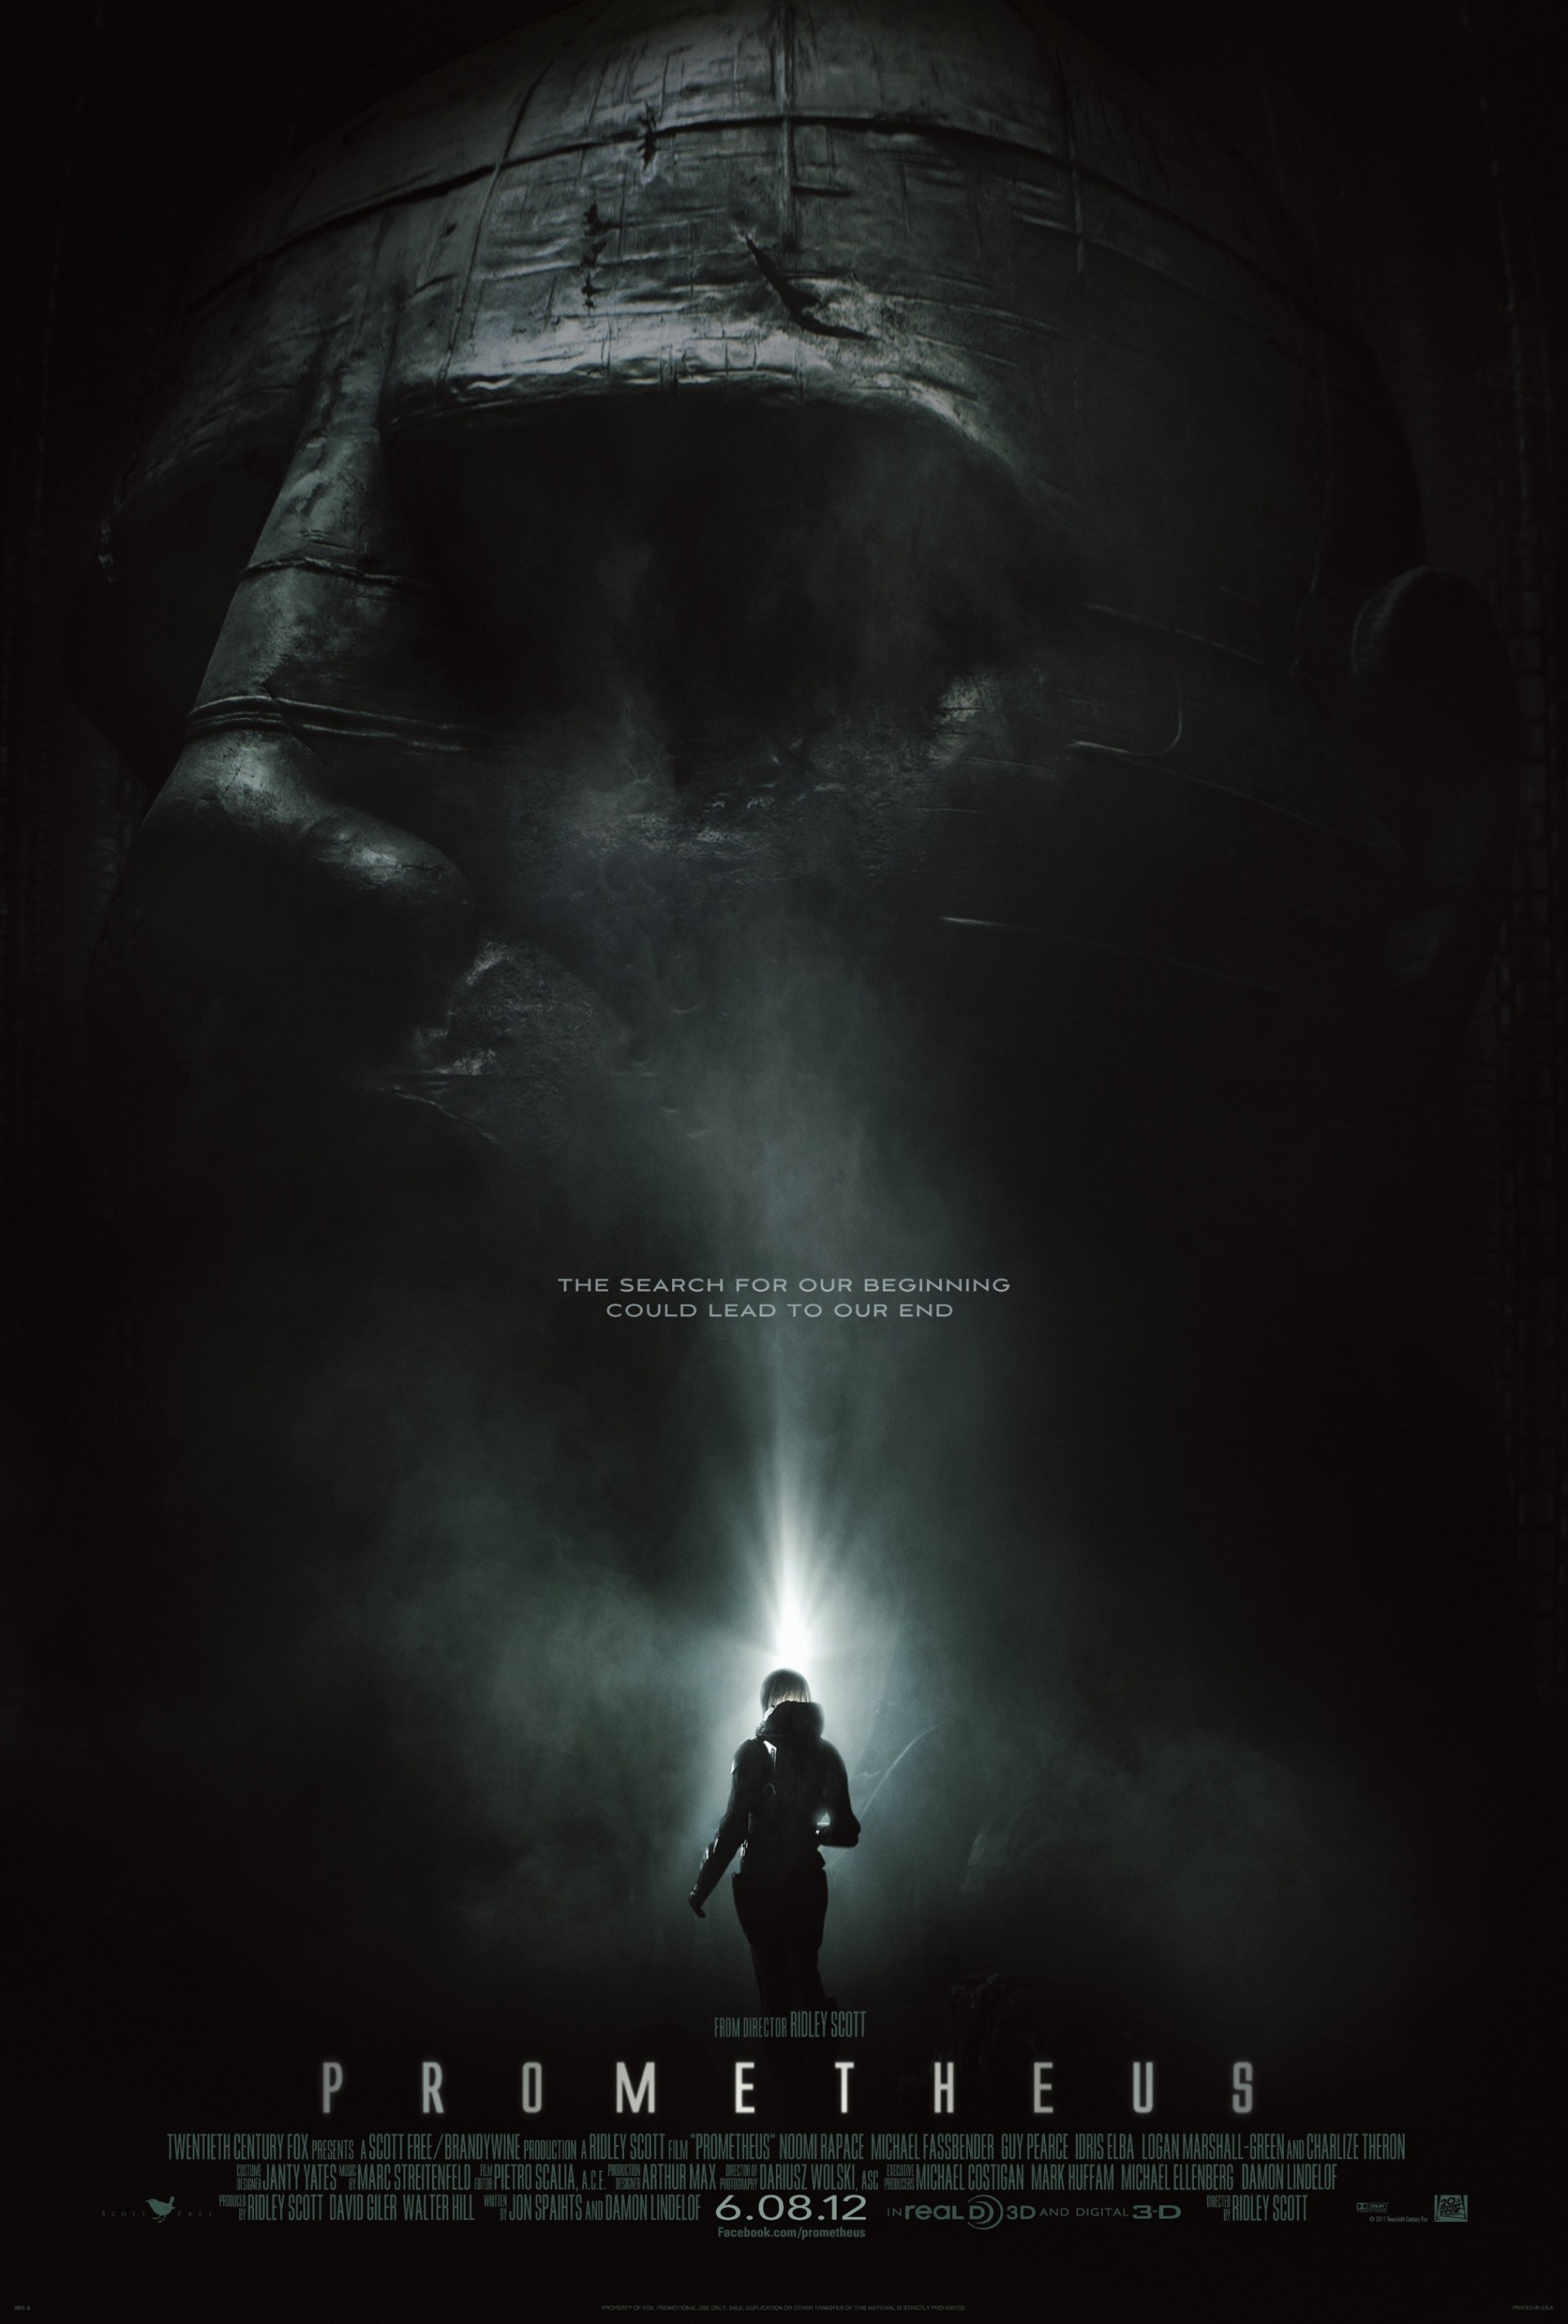 Prometheus 2012 [R5] [FRENCH]